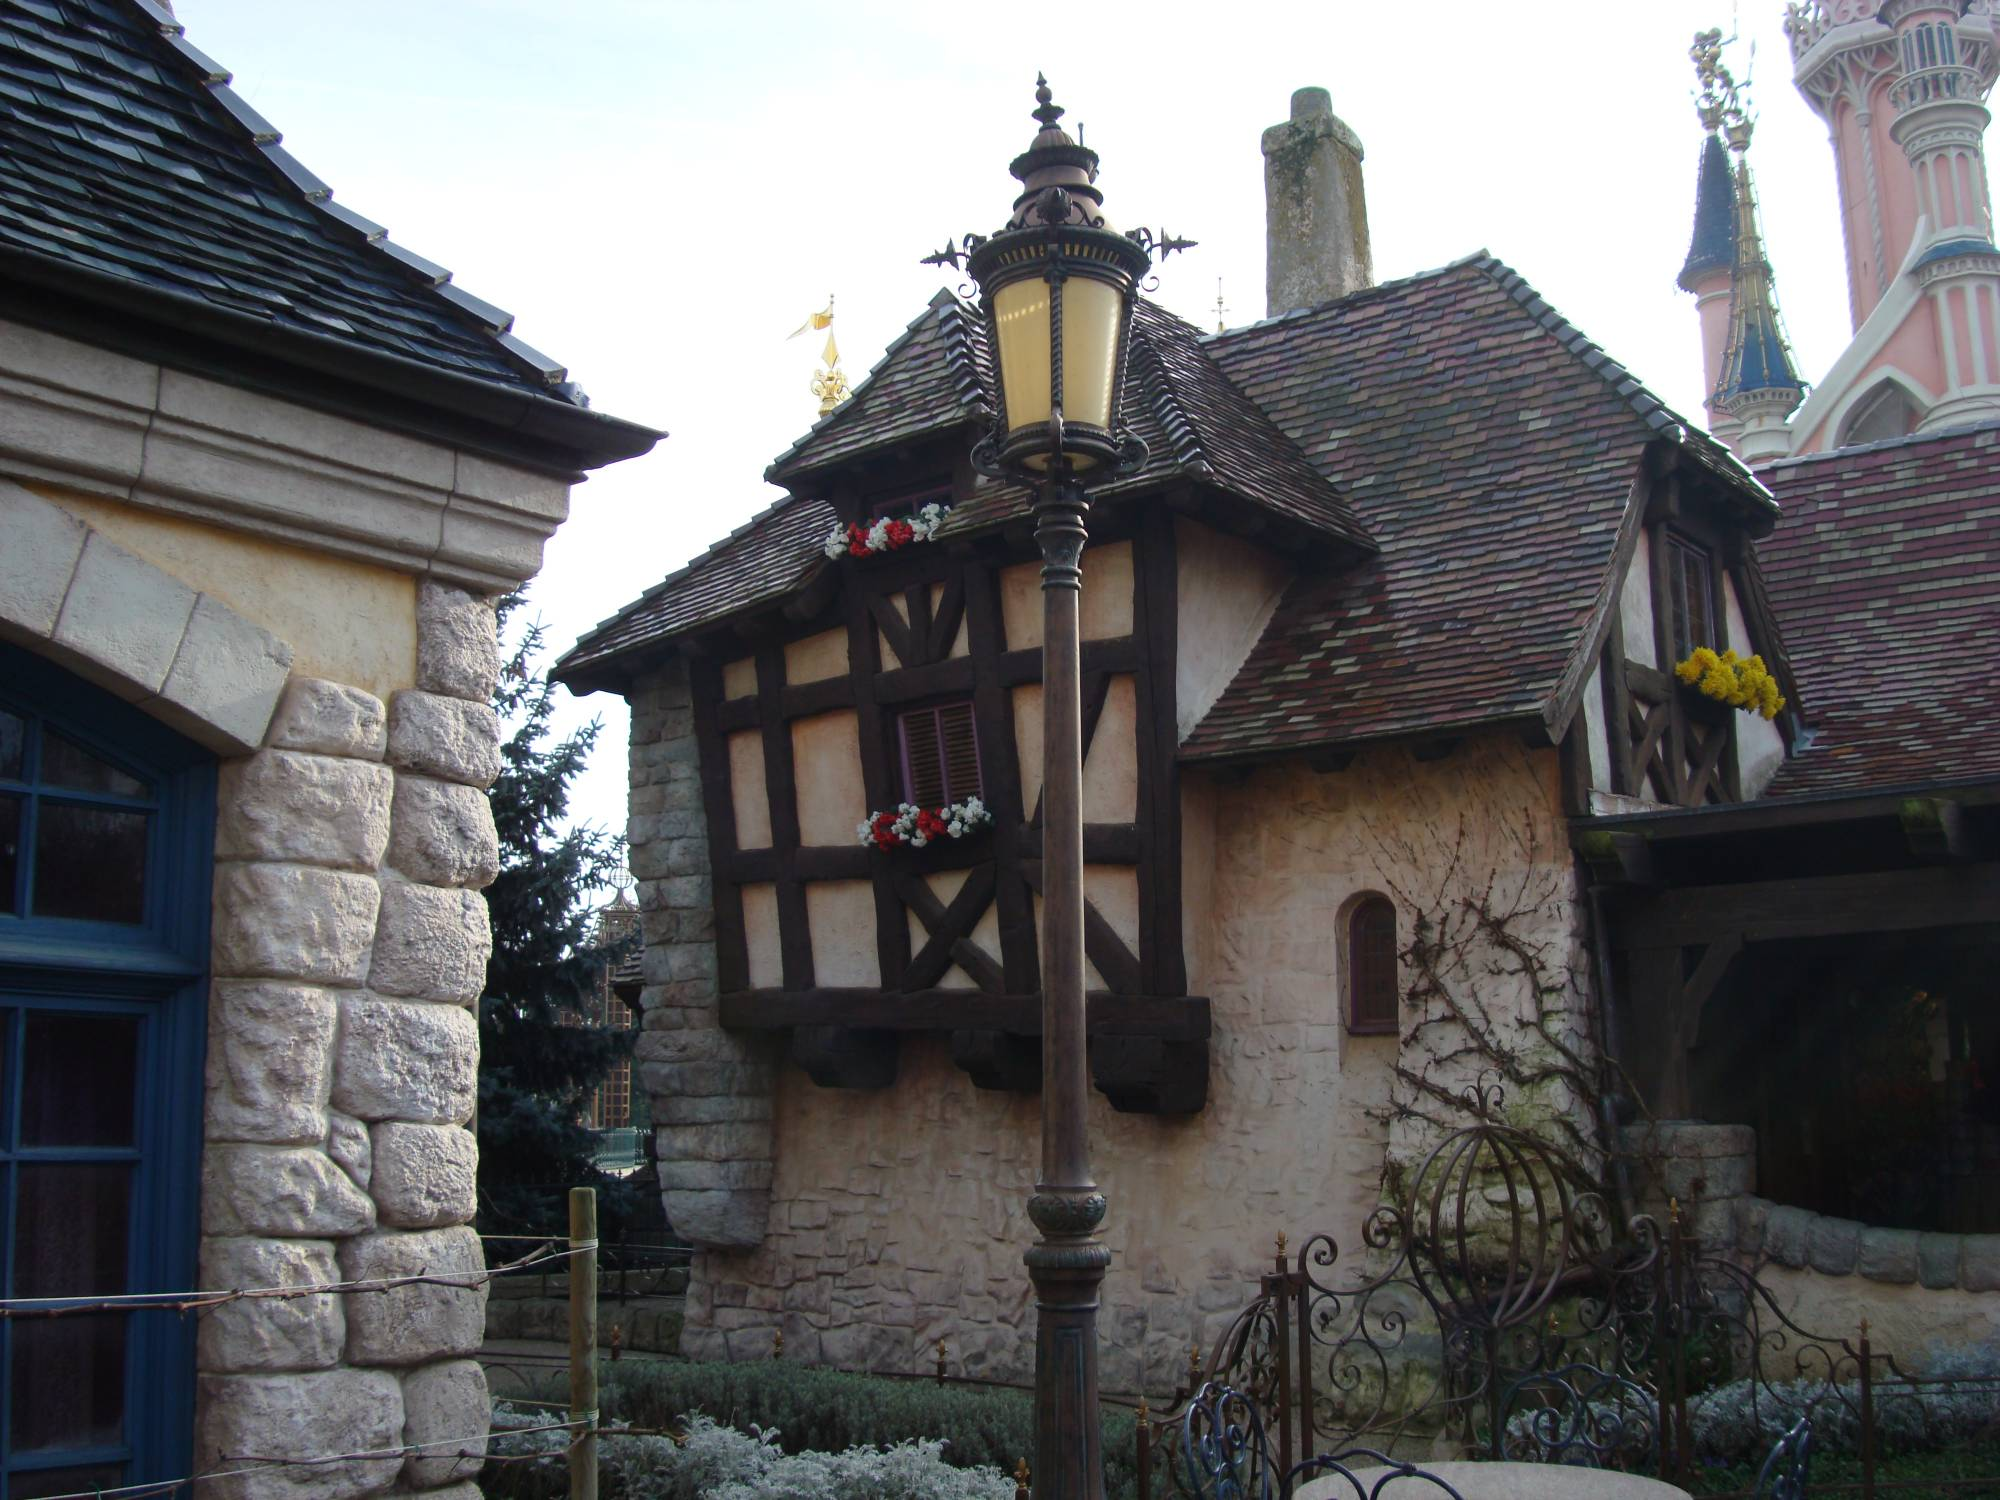 Disneyland Paris - Fantasyland